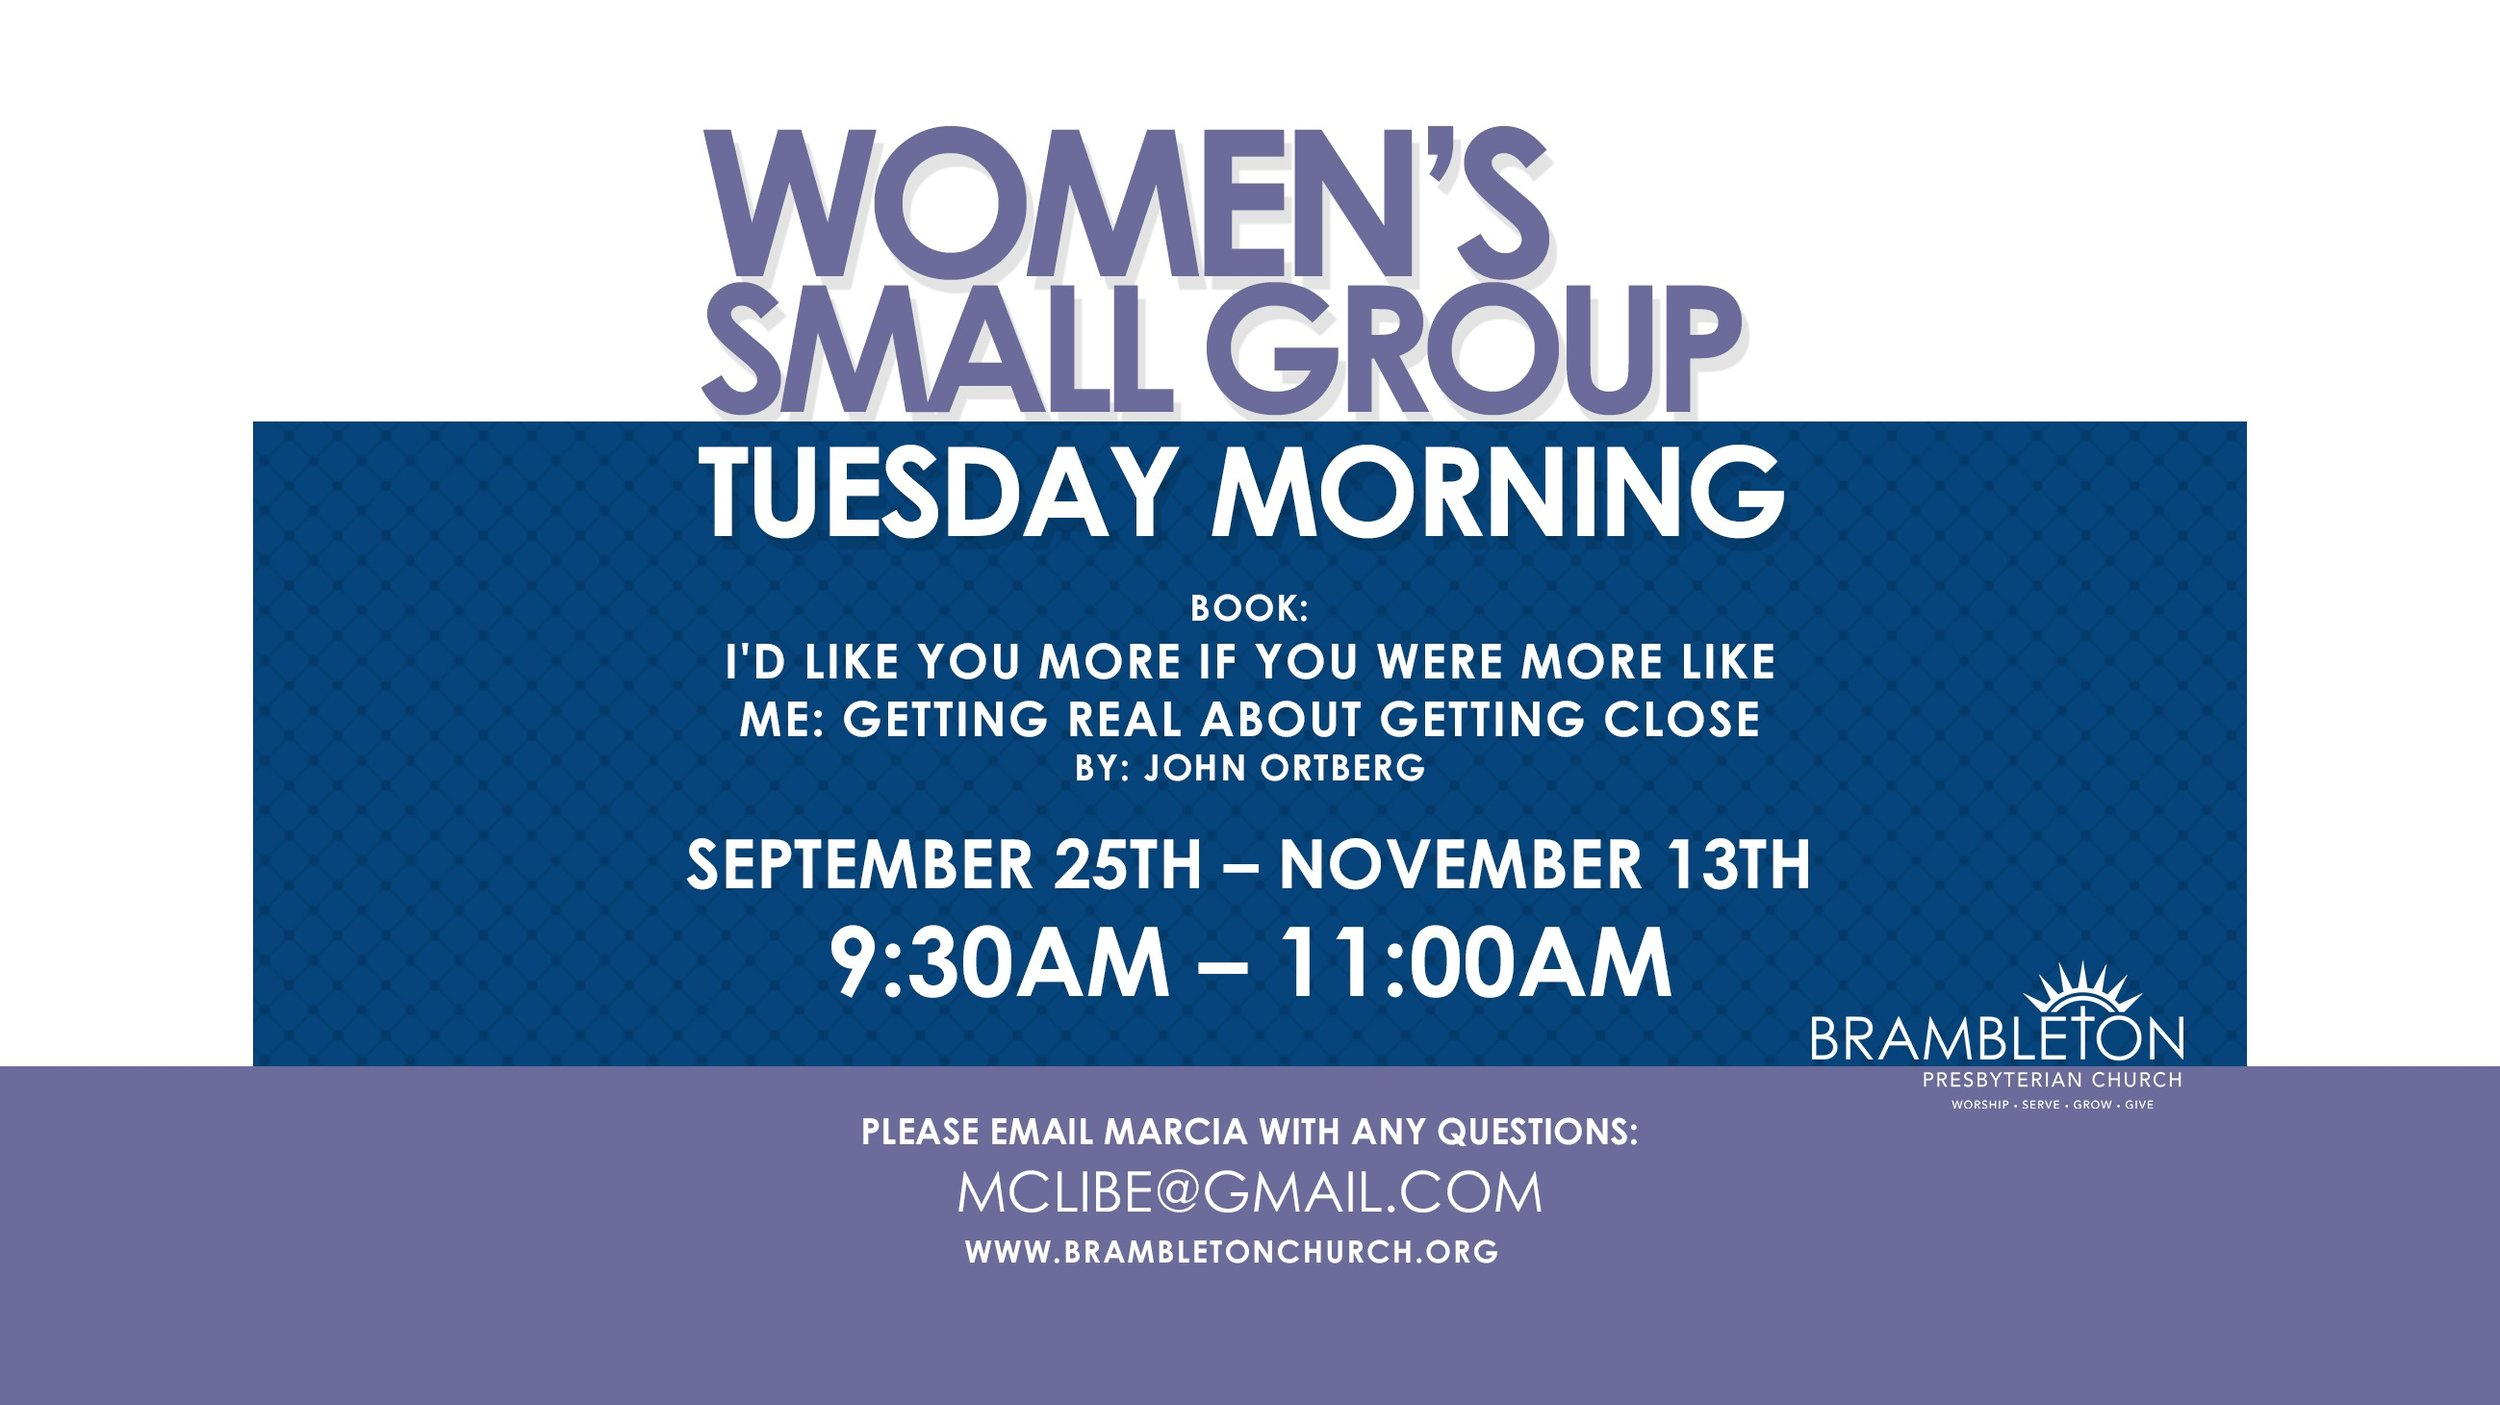 Womens Tuesday Morning Small Group.jpg